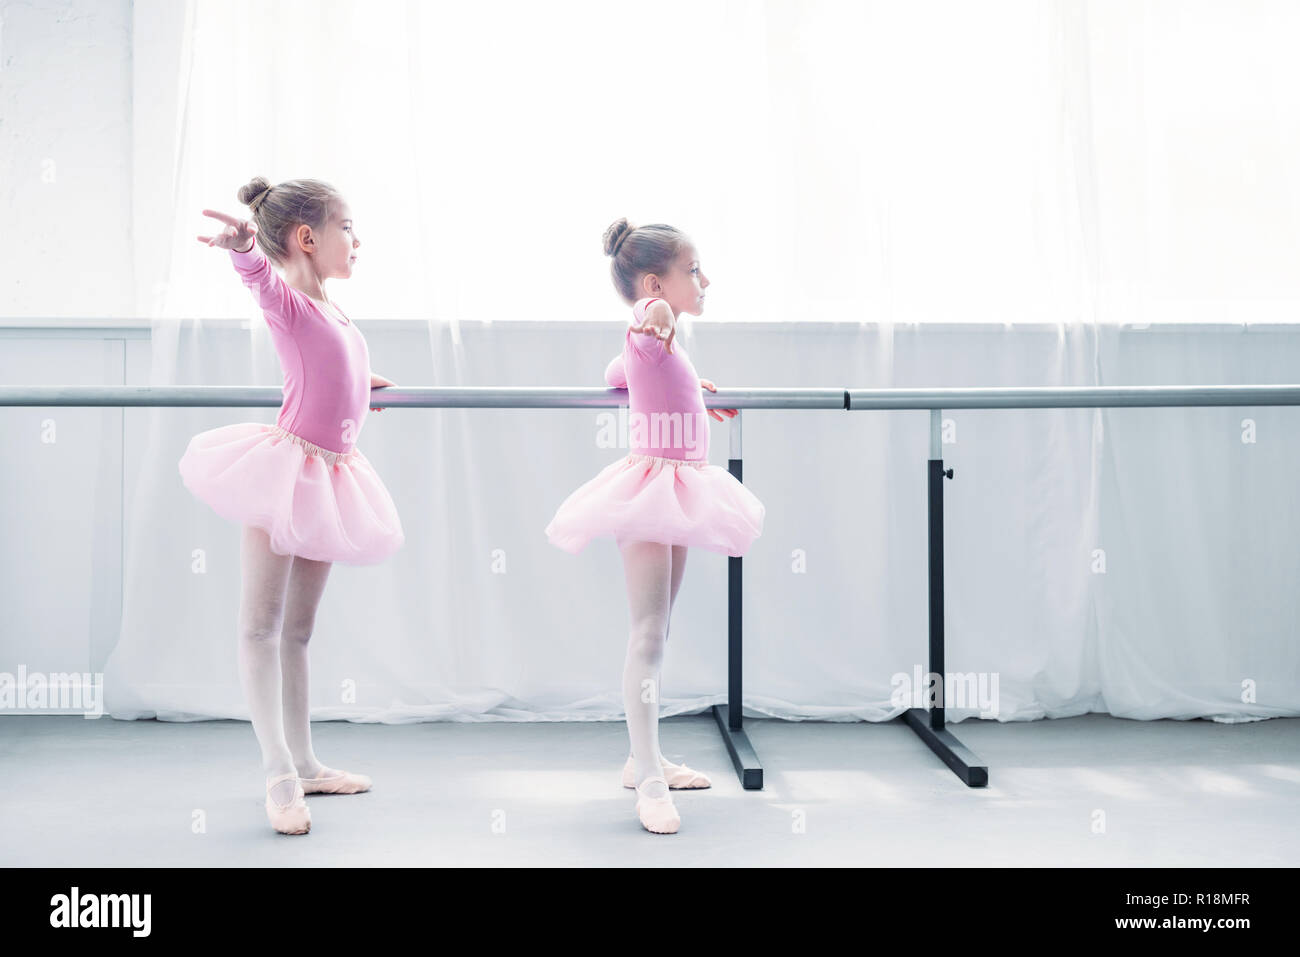 side view of beautiful little kids in pink tutu skirts practicing ballet in ballet studio - Stock Image